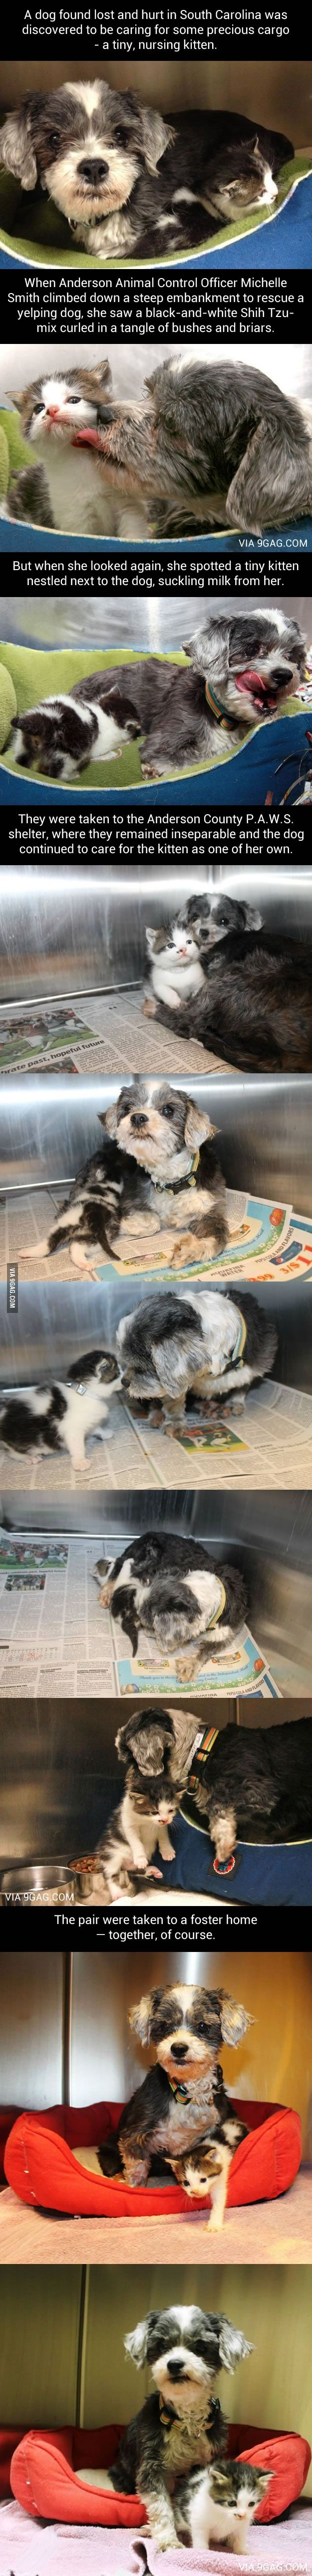 What a beautiful story!! If only humans cared for each other like this!!